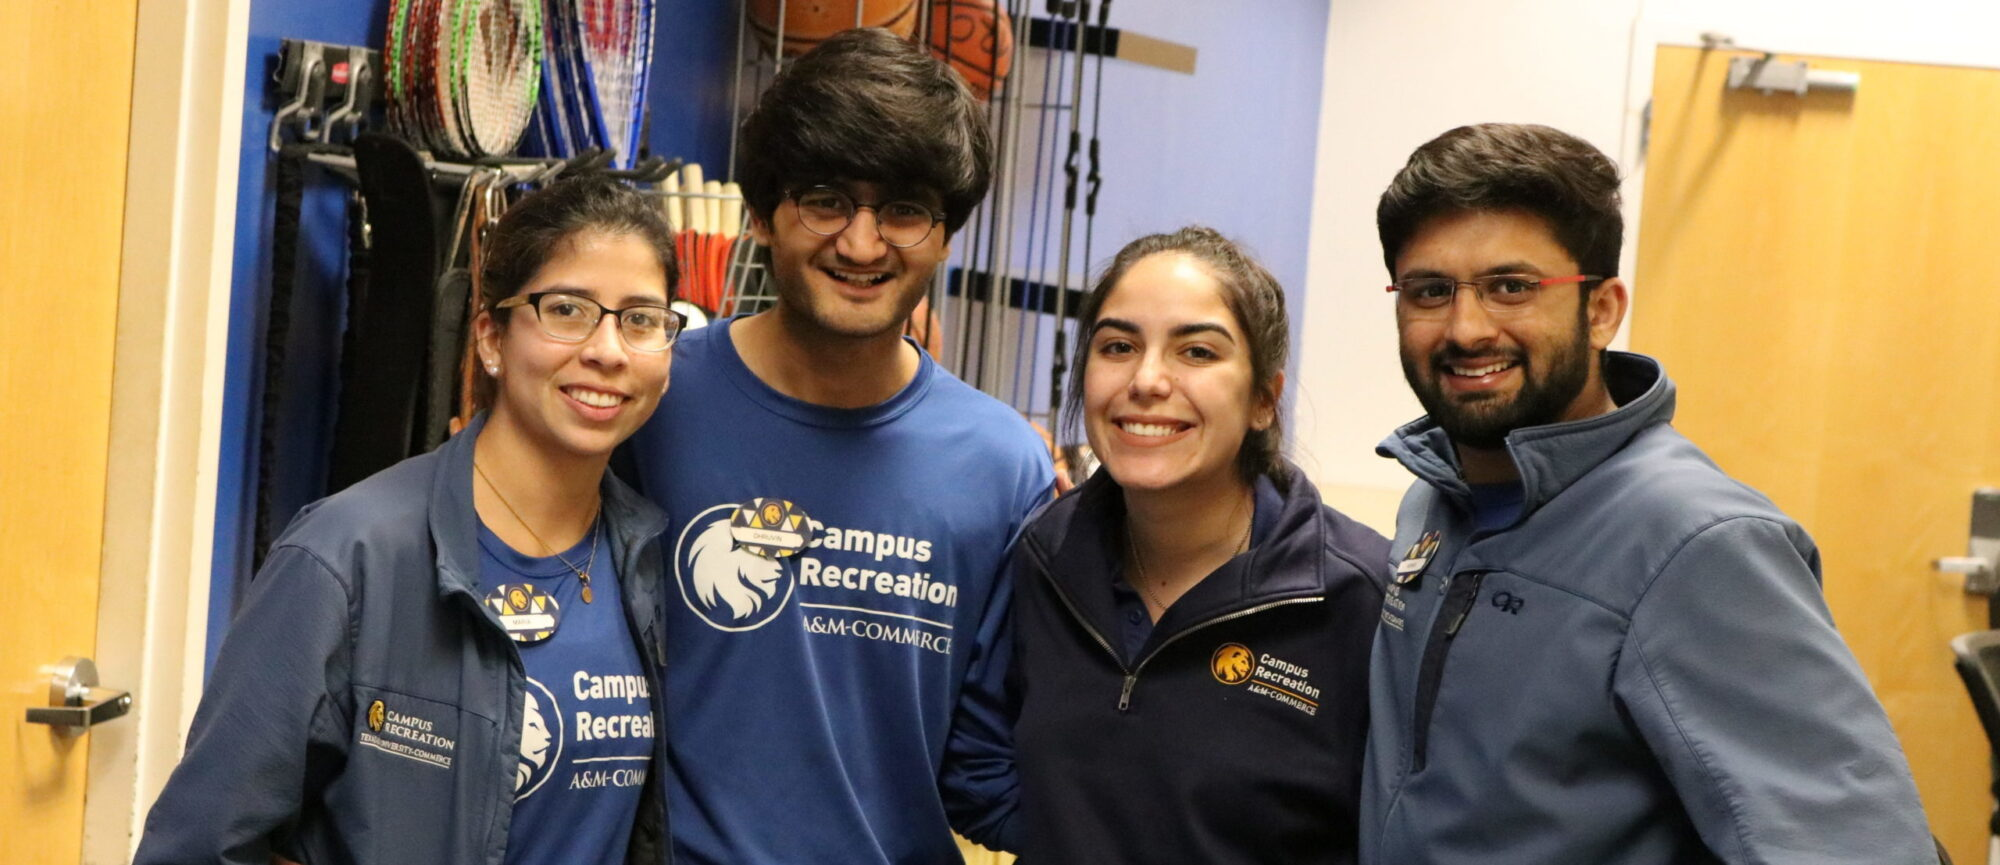 Four student employees smiling at the camera.